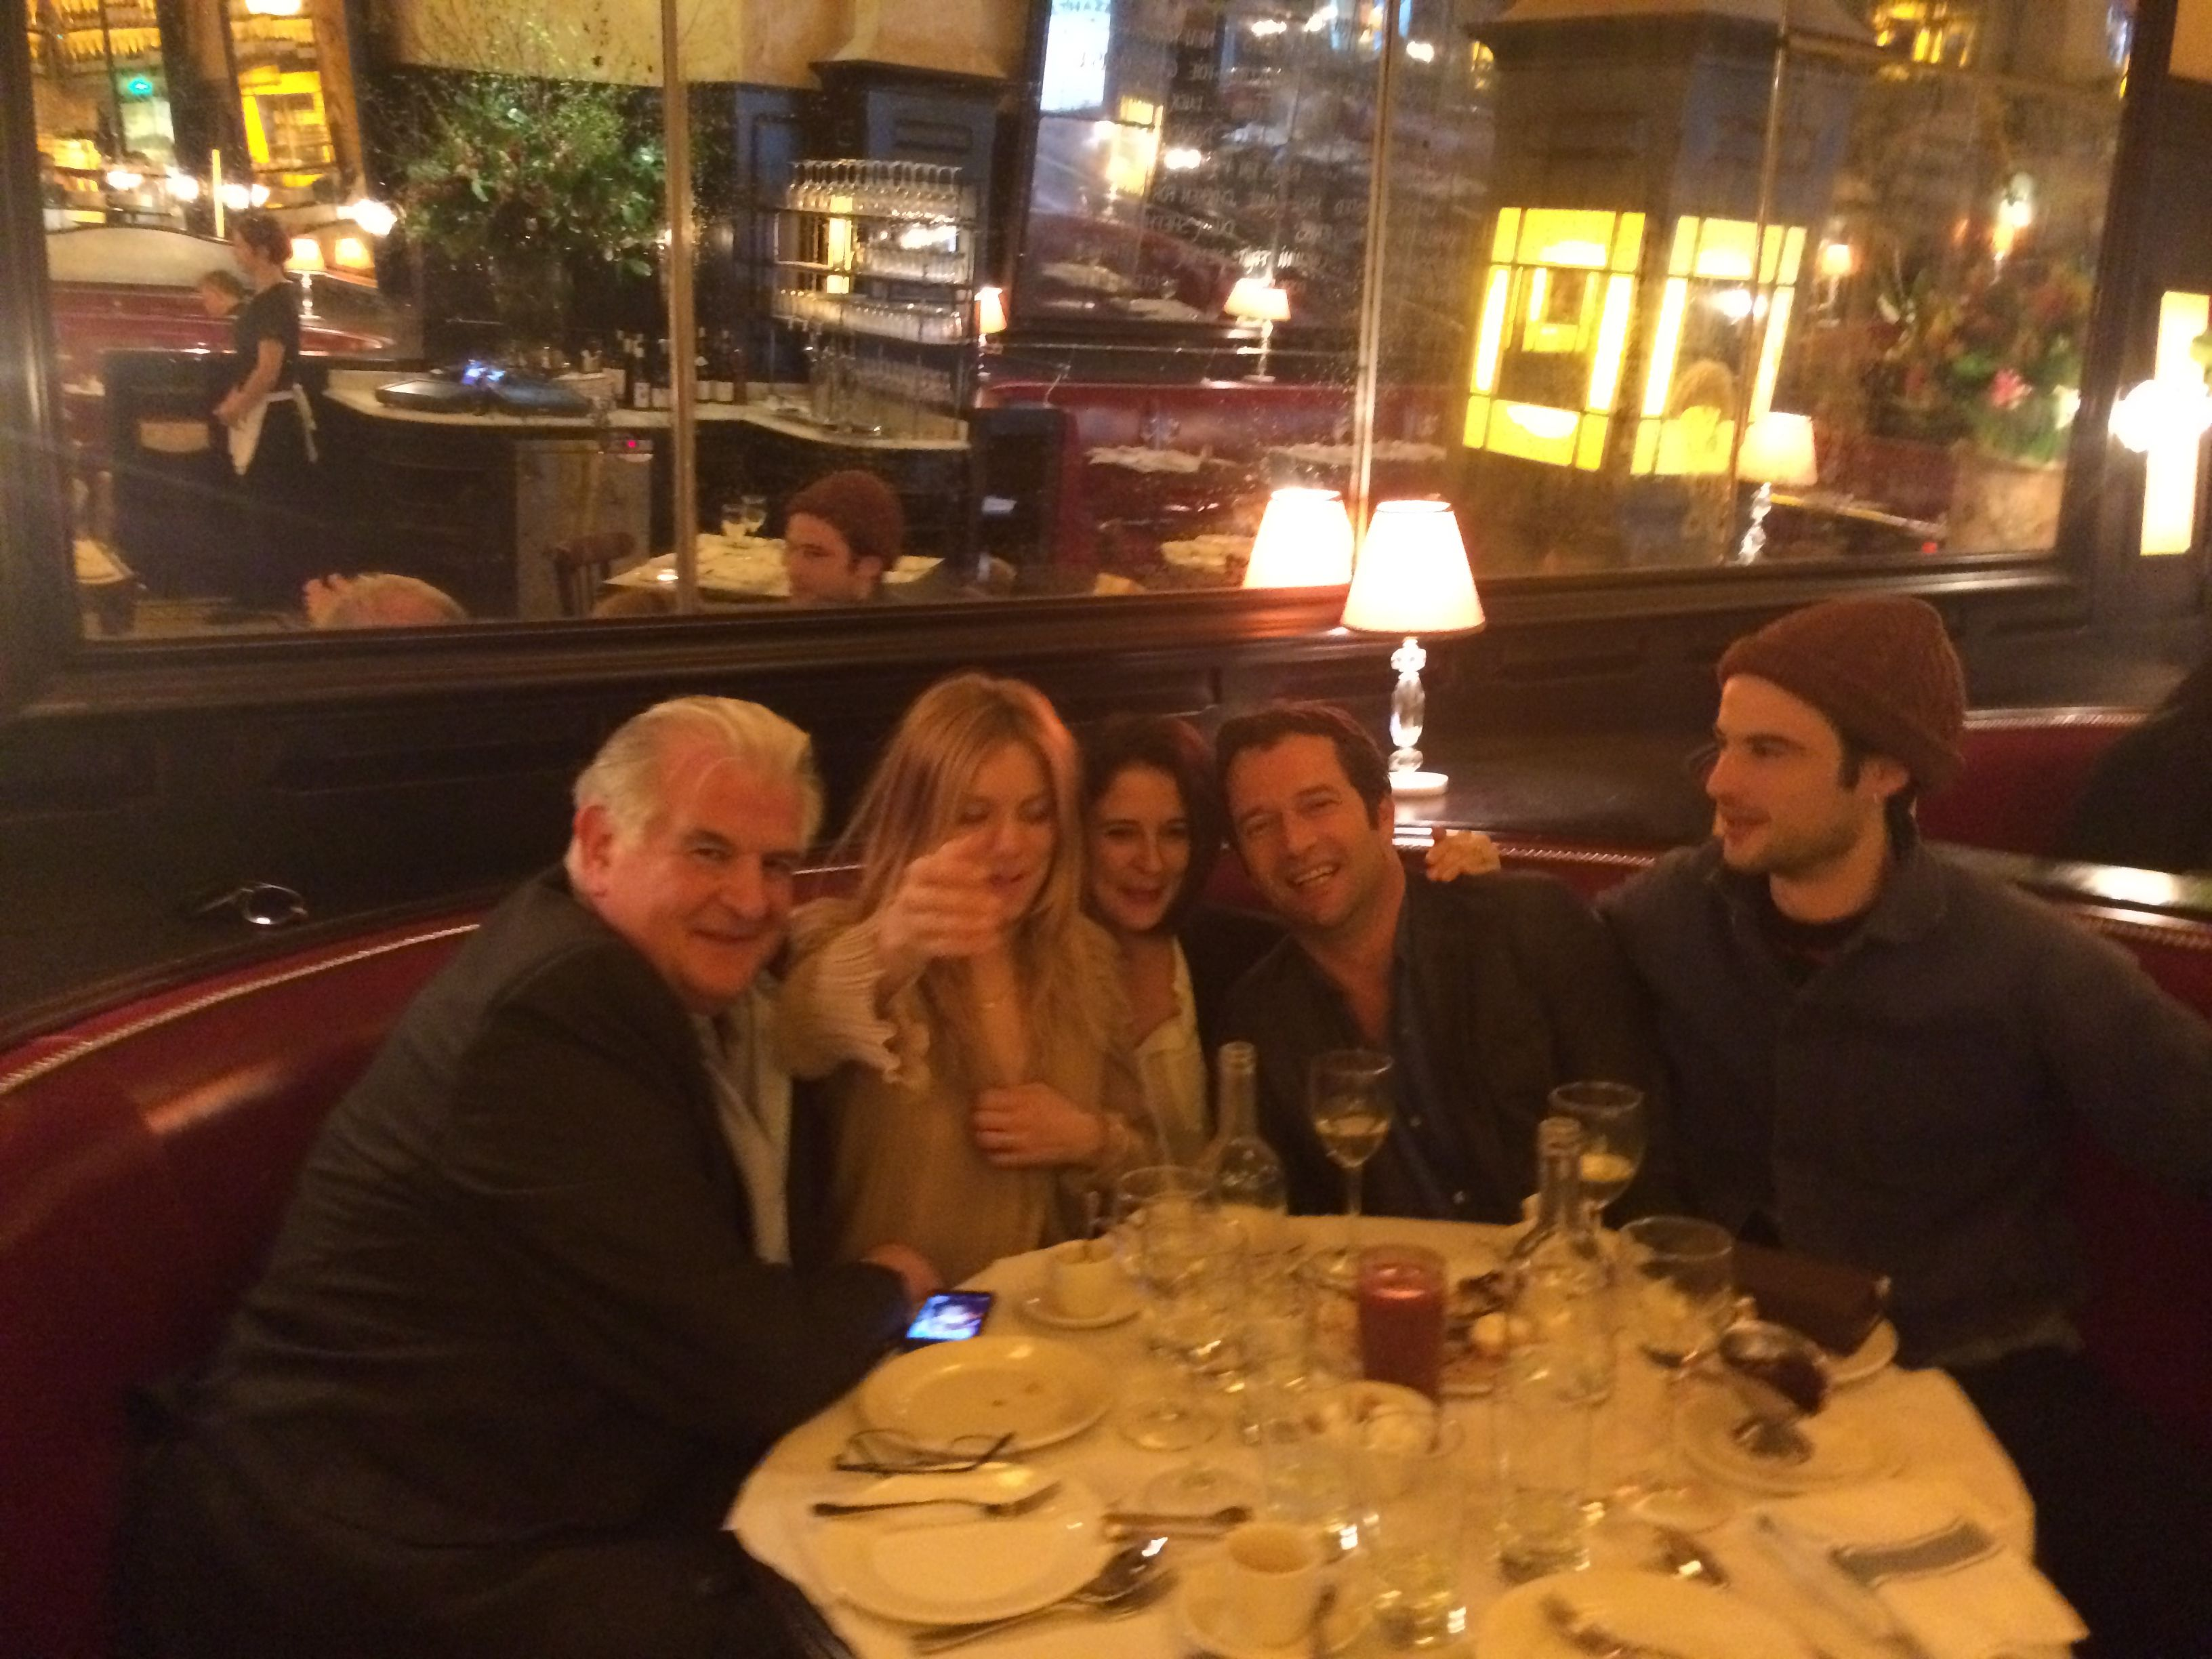 Sienna Miller and friends sitting in booth